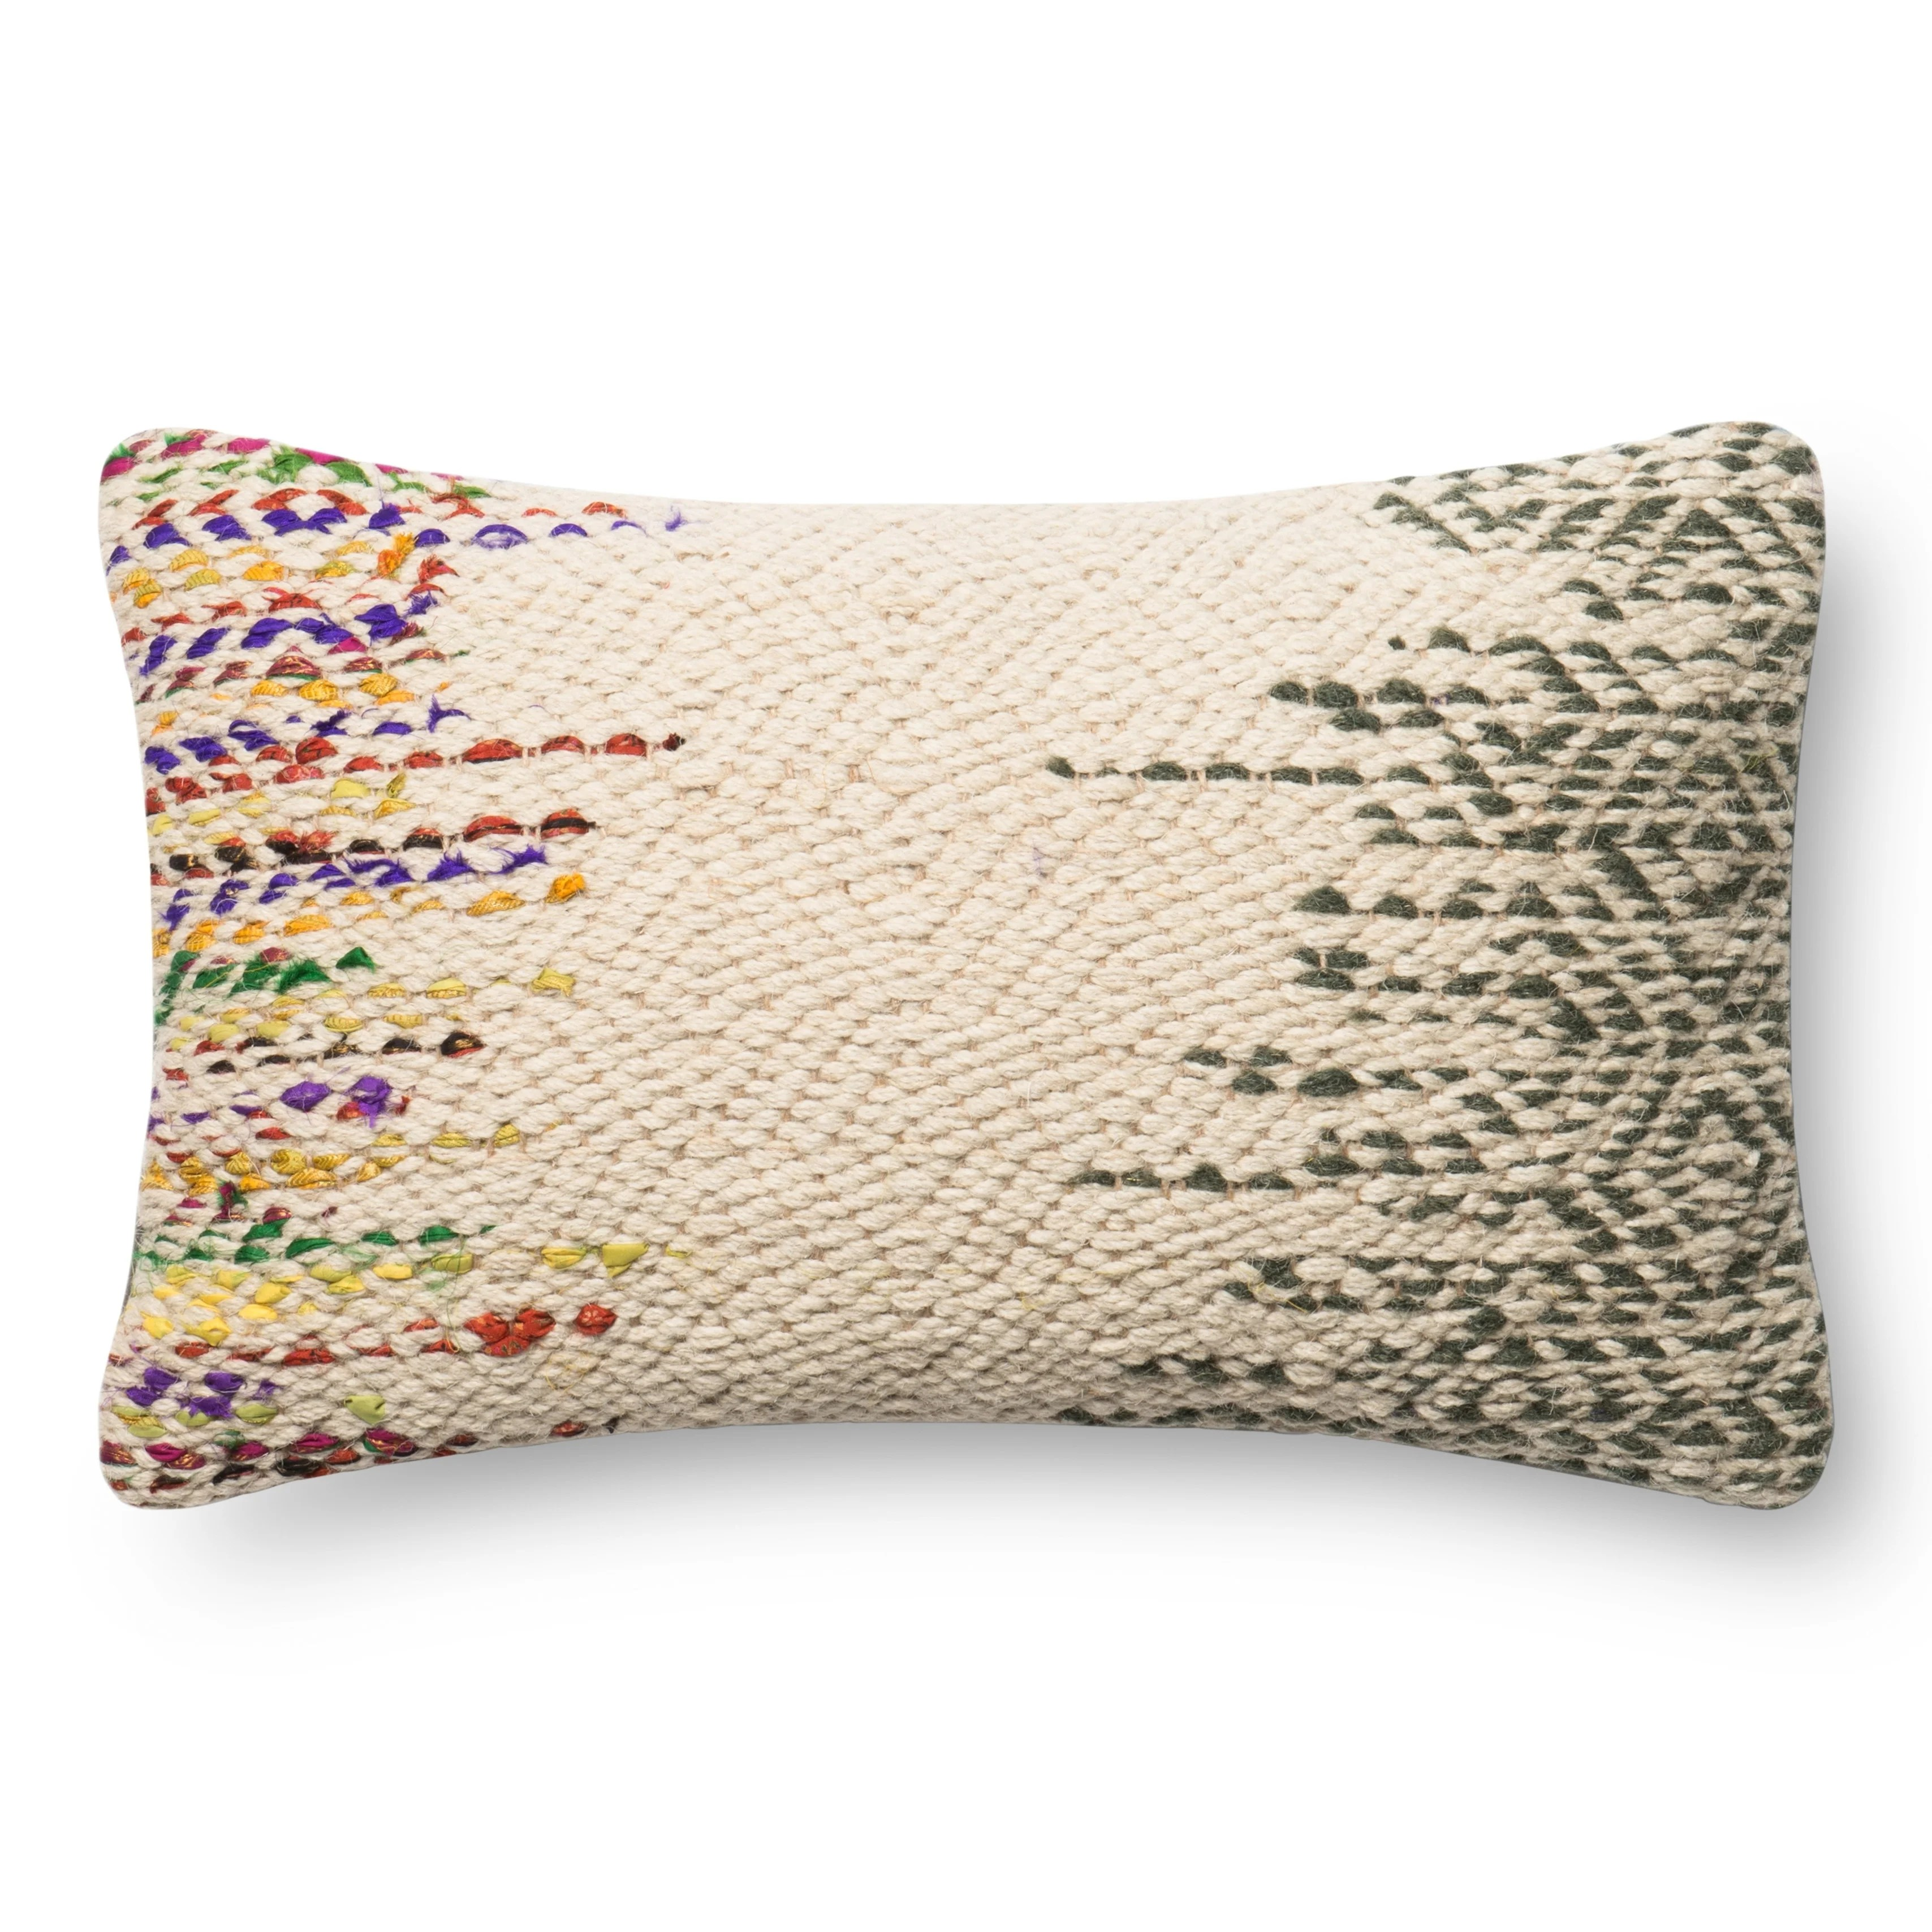 Woven Wool/ Cotton Ivory/ Multi 13 x 21 Throw Pillow or Pillow Cover